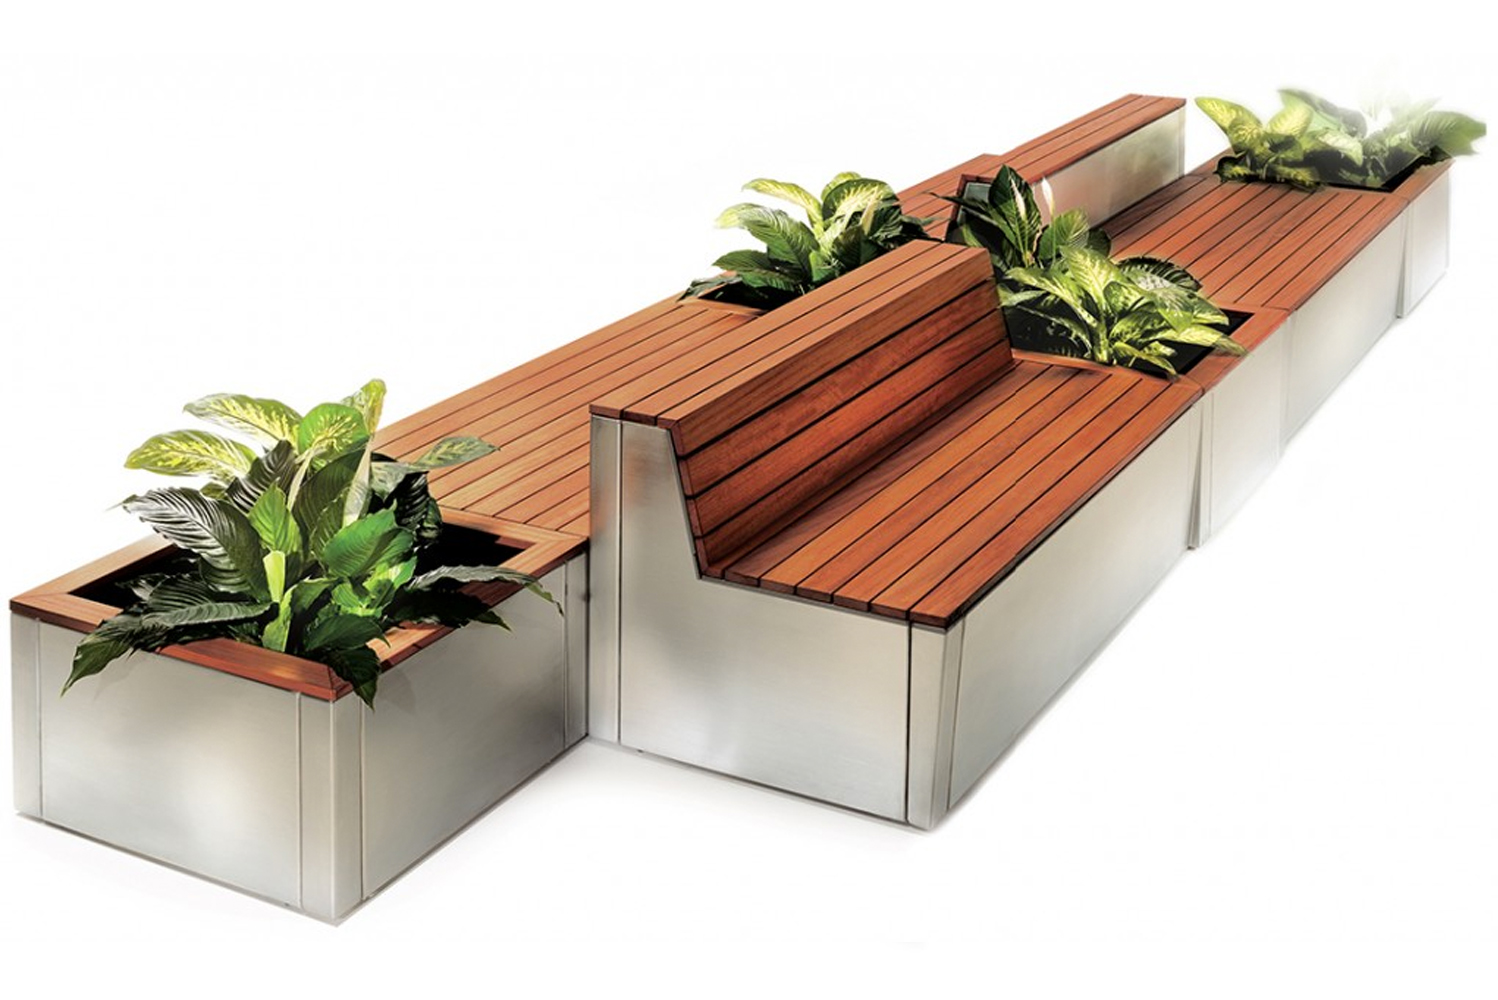 An aluminum base supports seating and optional planter boxes made of recycled wood composite slats.